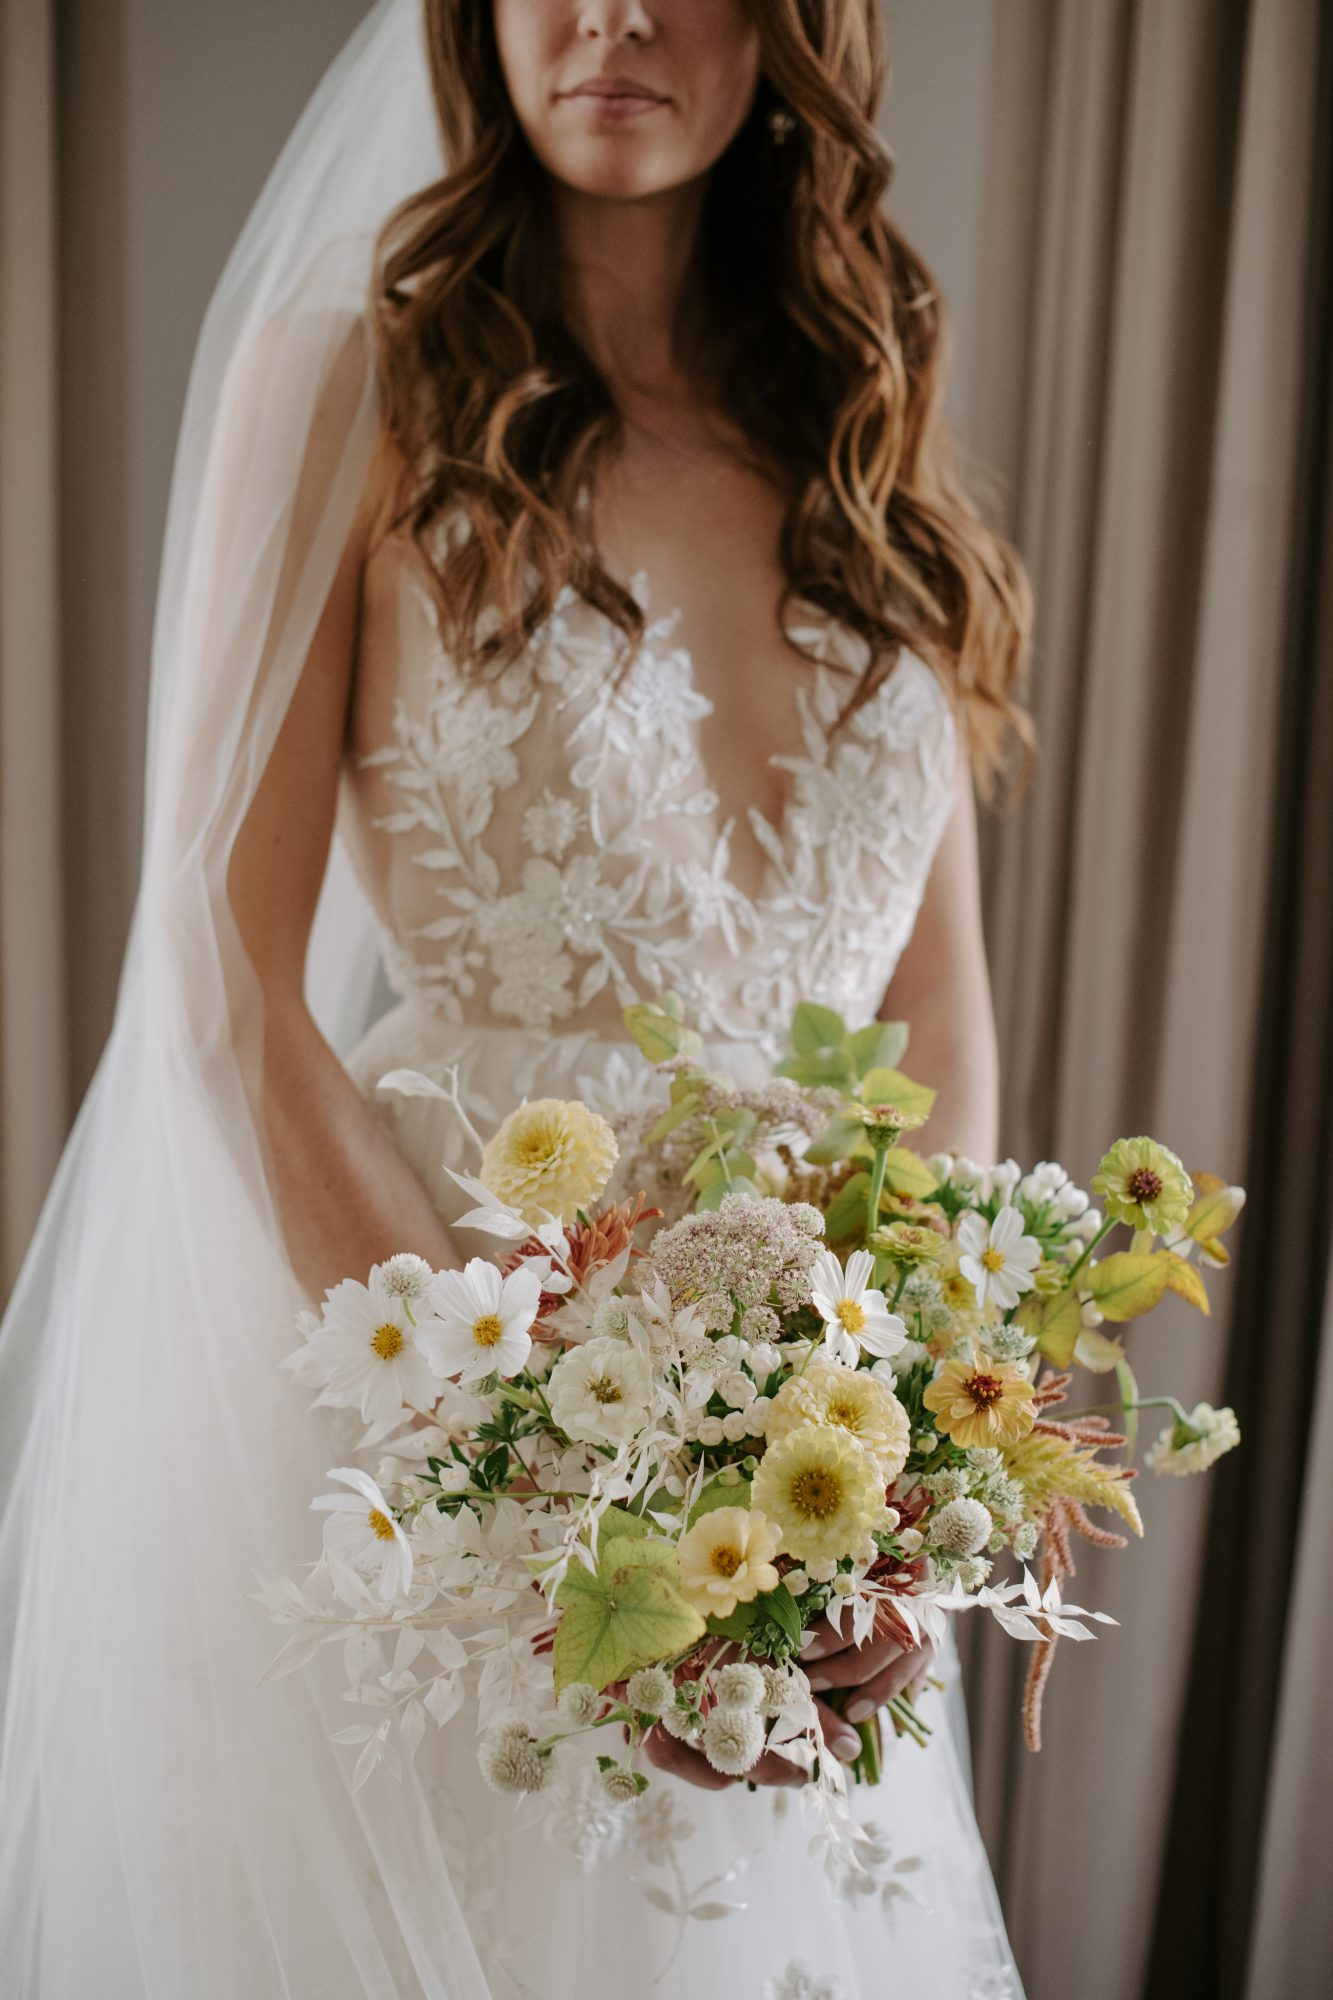 jenny and paul wedding bride wearing dress and holding floral bouquet